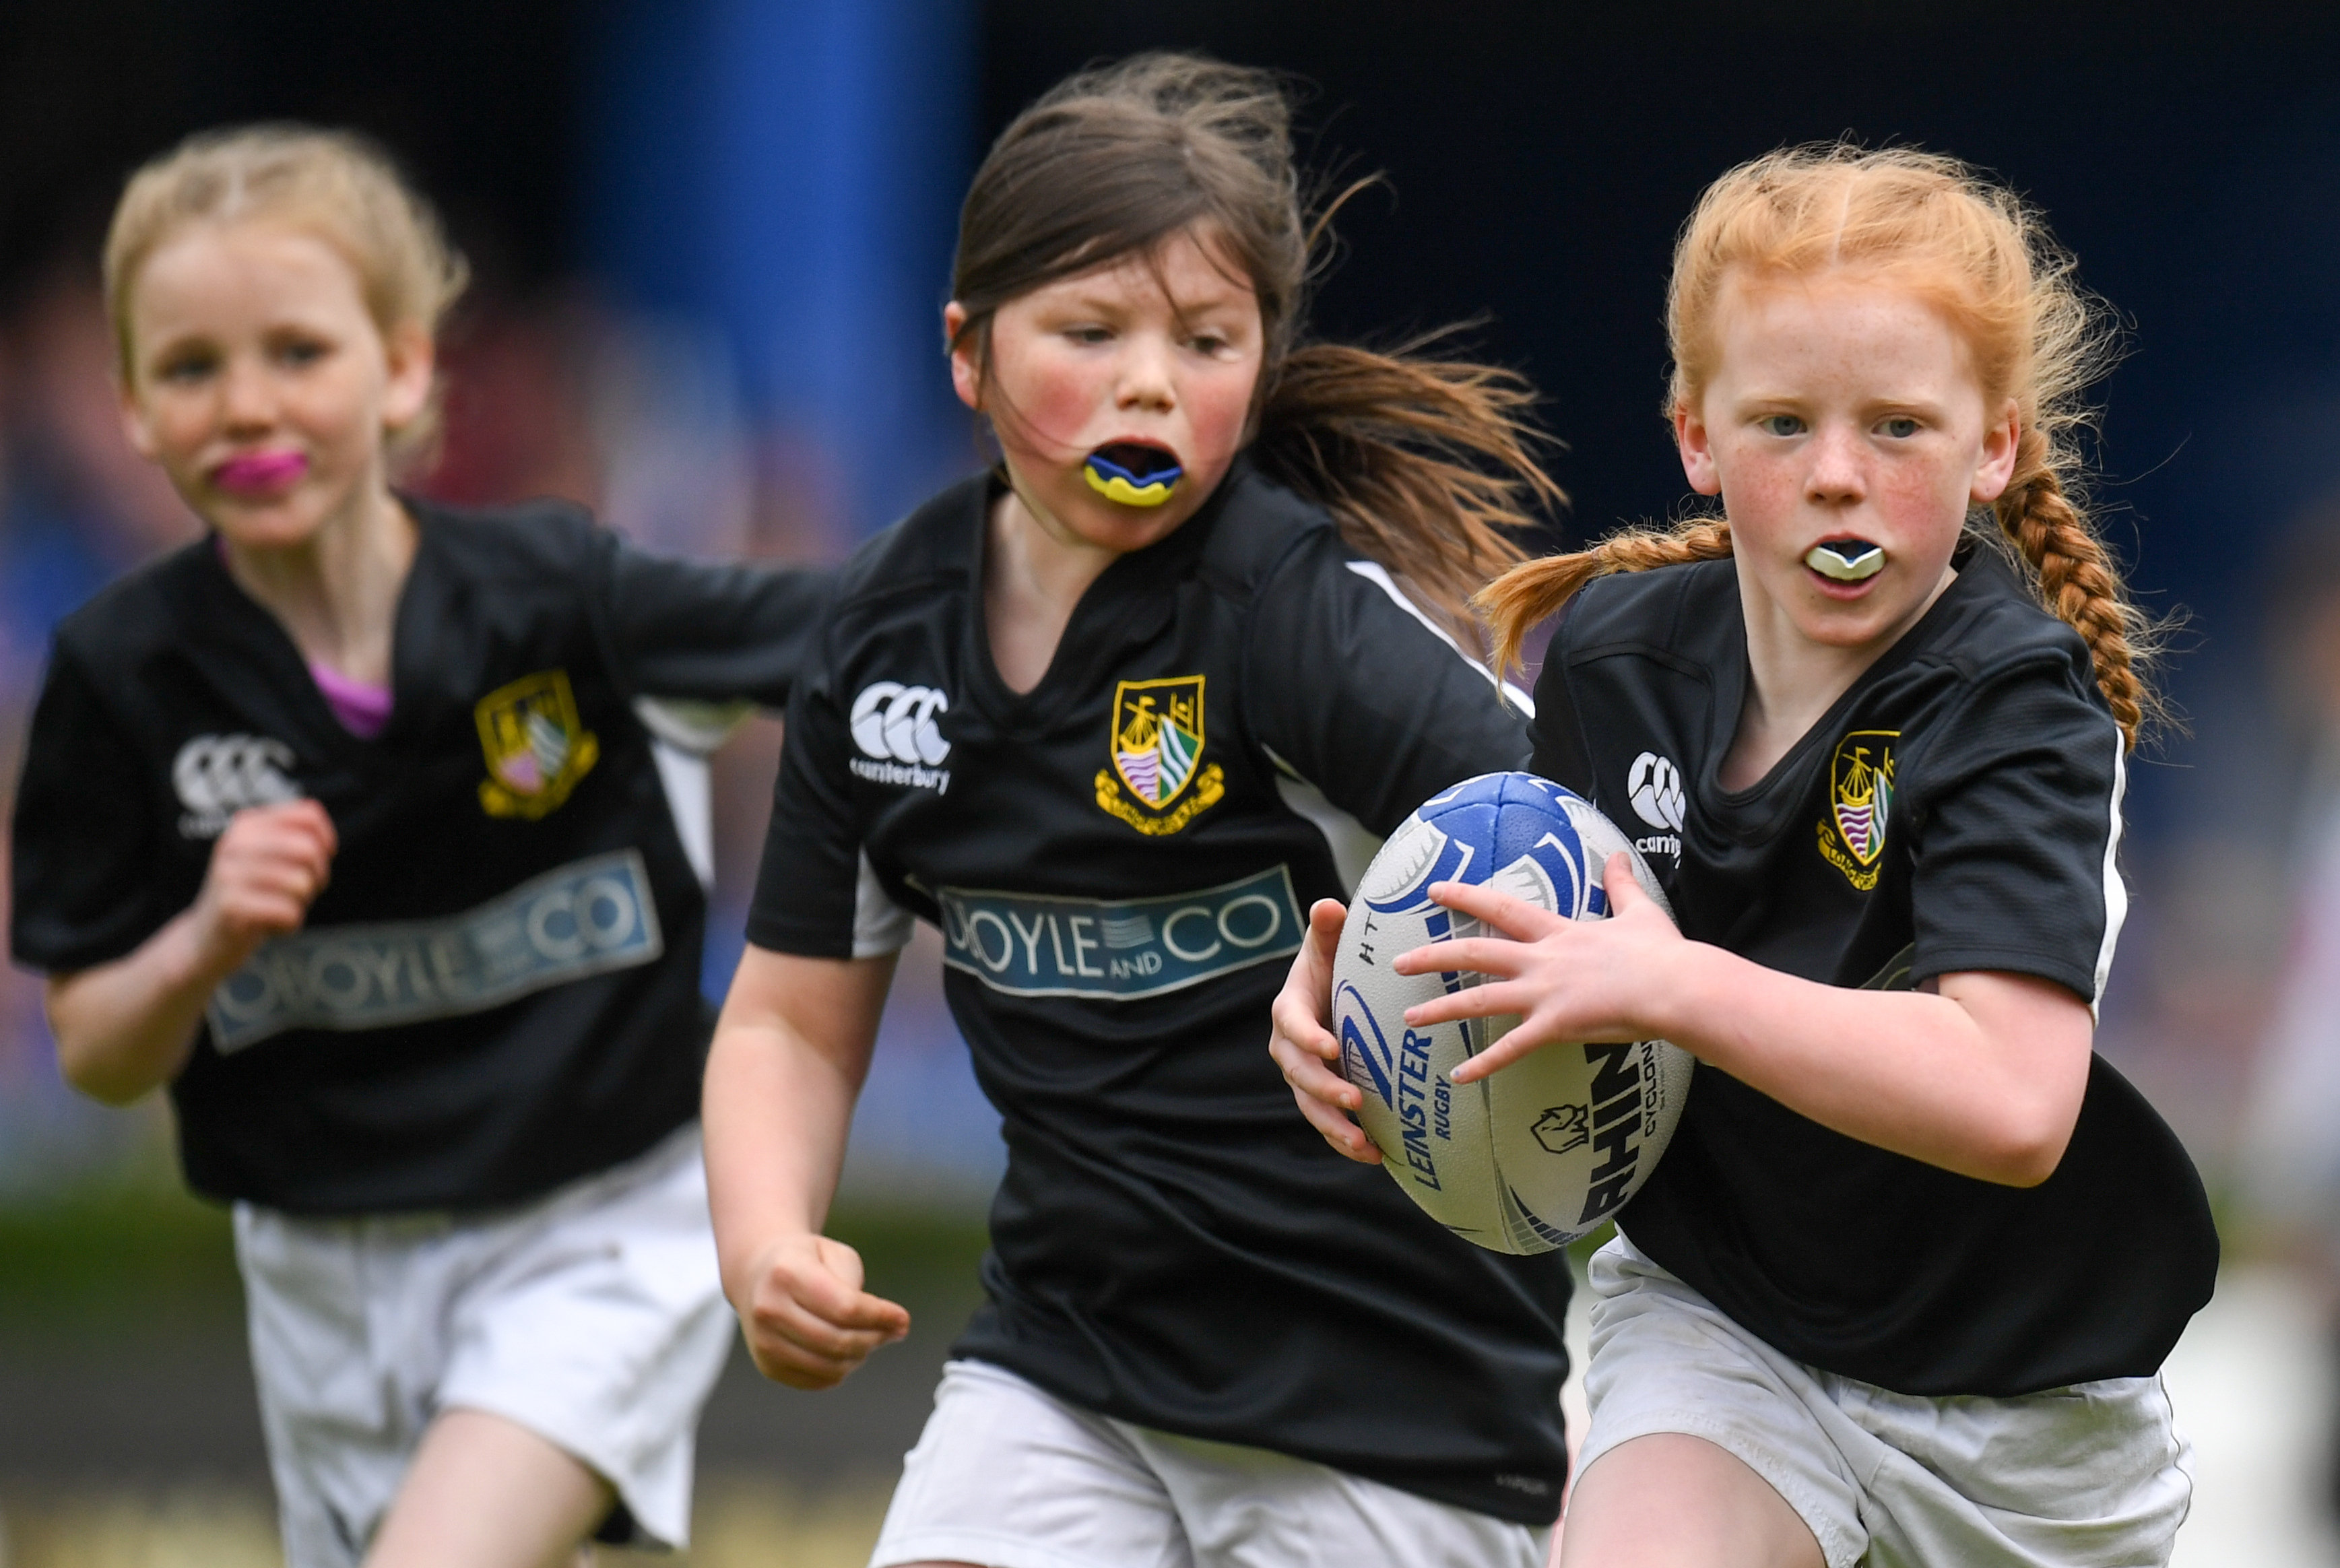 Longford Warriors building formidable youths set-up - Leinster